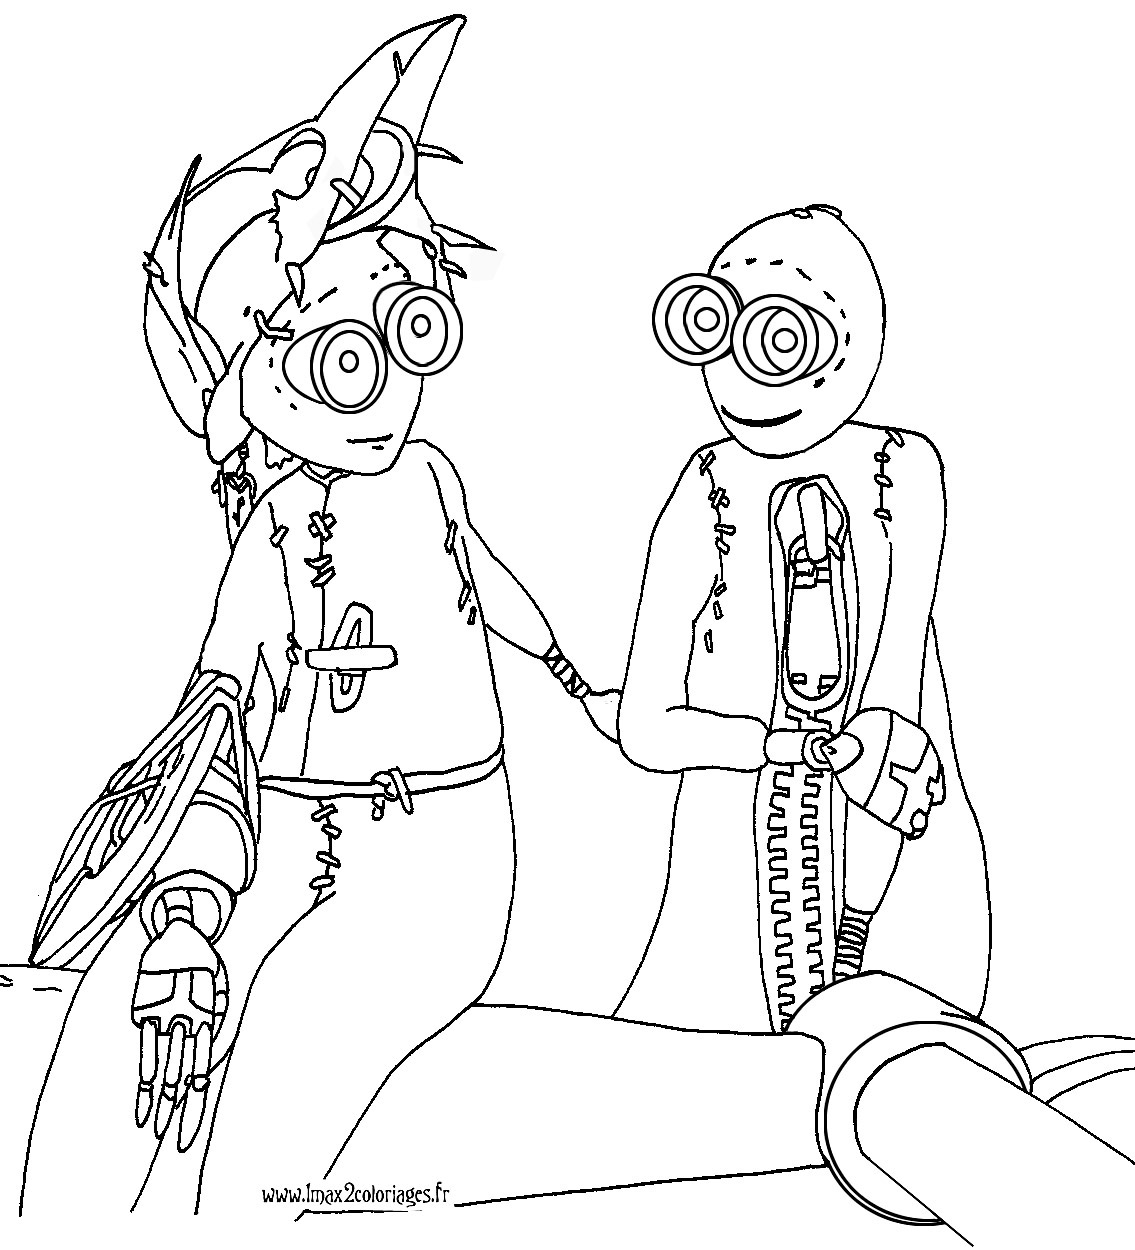 tim burton coloring pages sally tim burton coloring pages coloring pages tim coloring pages burton